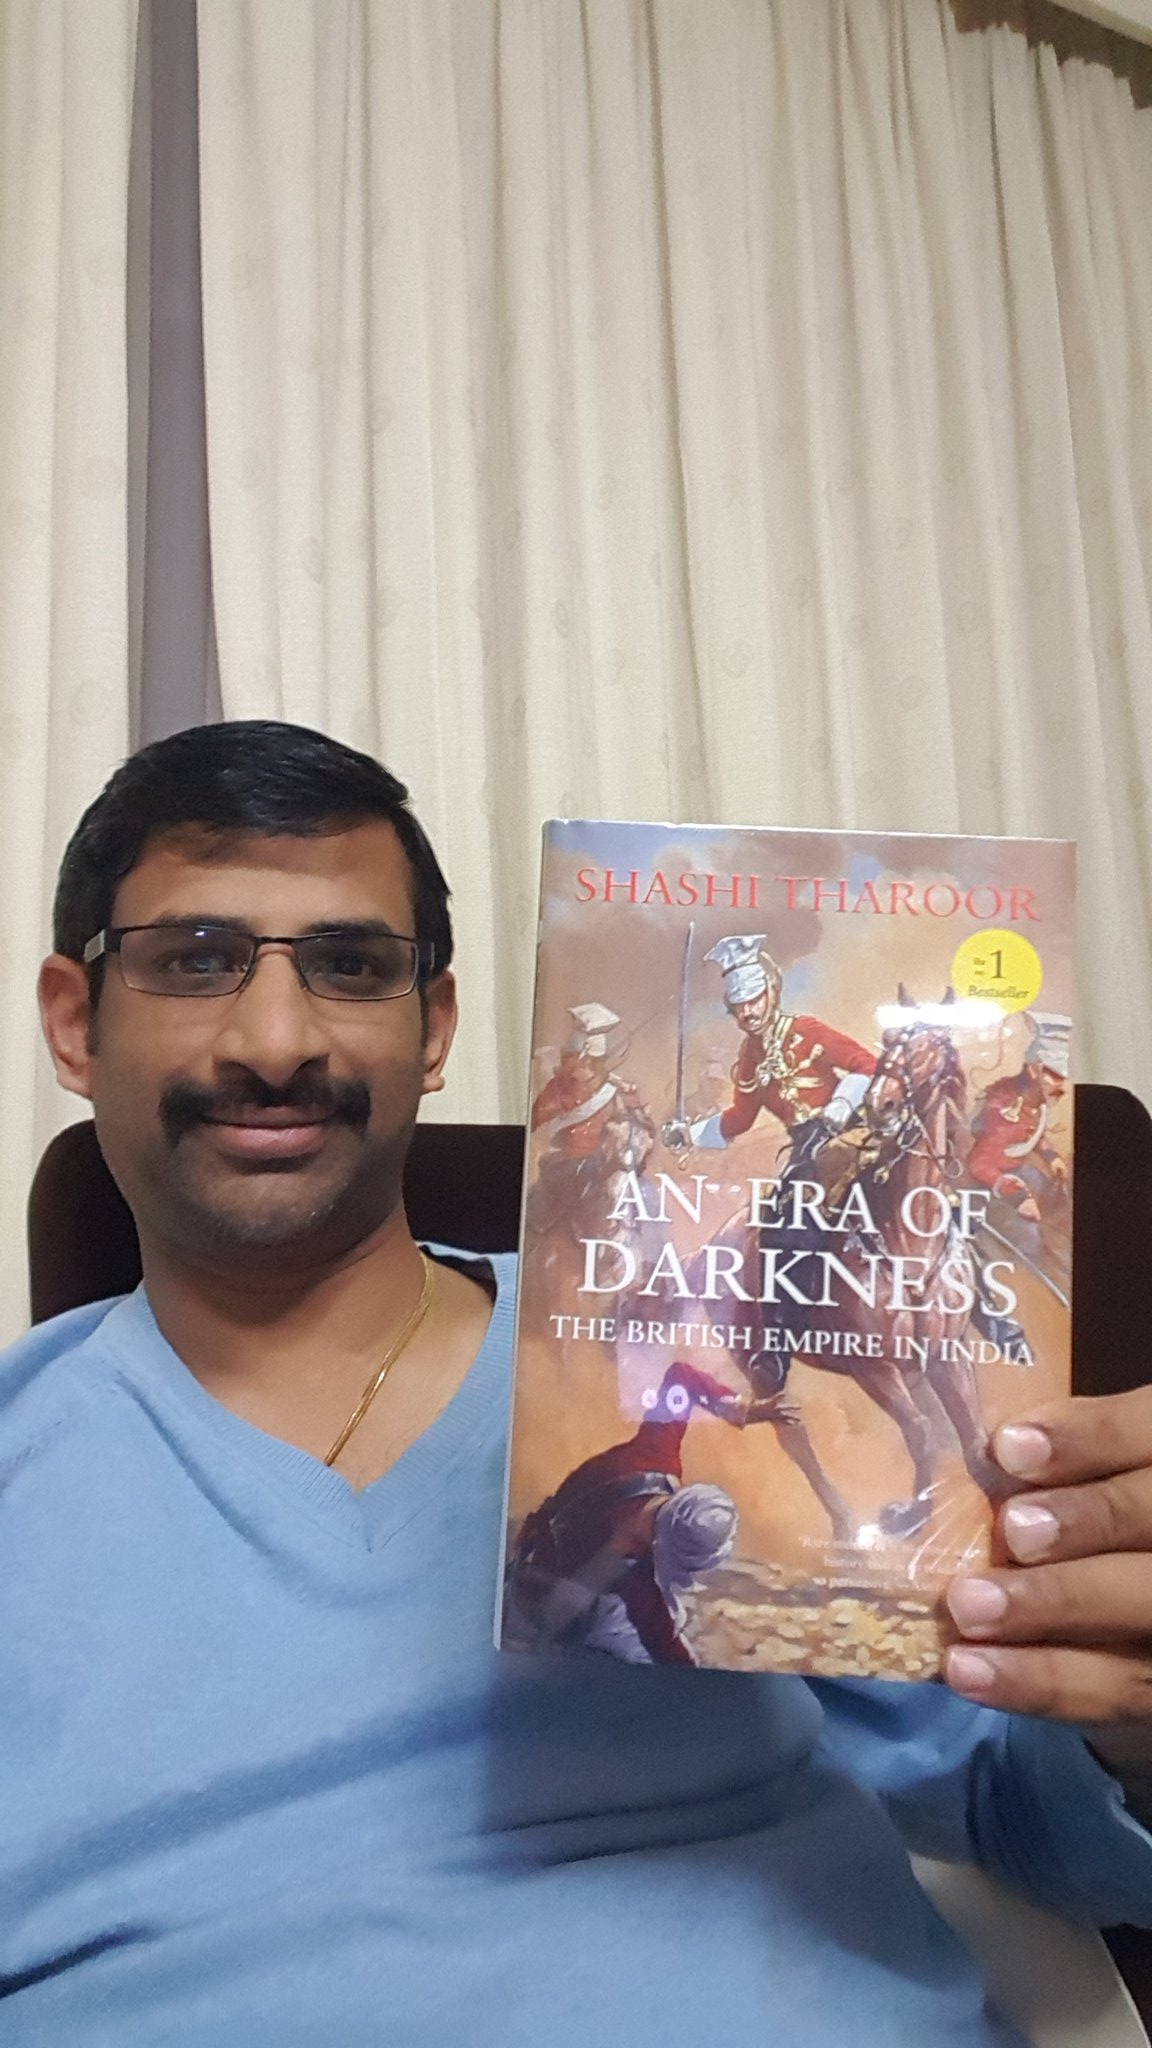 @ShashiTharoor Dr. My copy just arrived in Bahrain. Aapkey saath nahi toh Aapkey book ke saath hi selfie le lei. https://t.co/qMY4pdzpNG